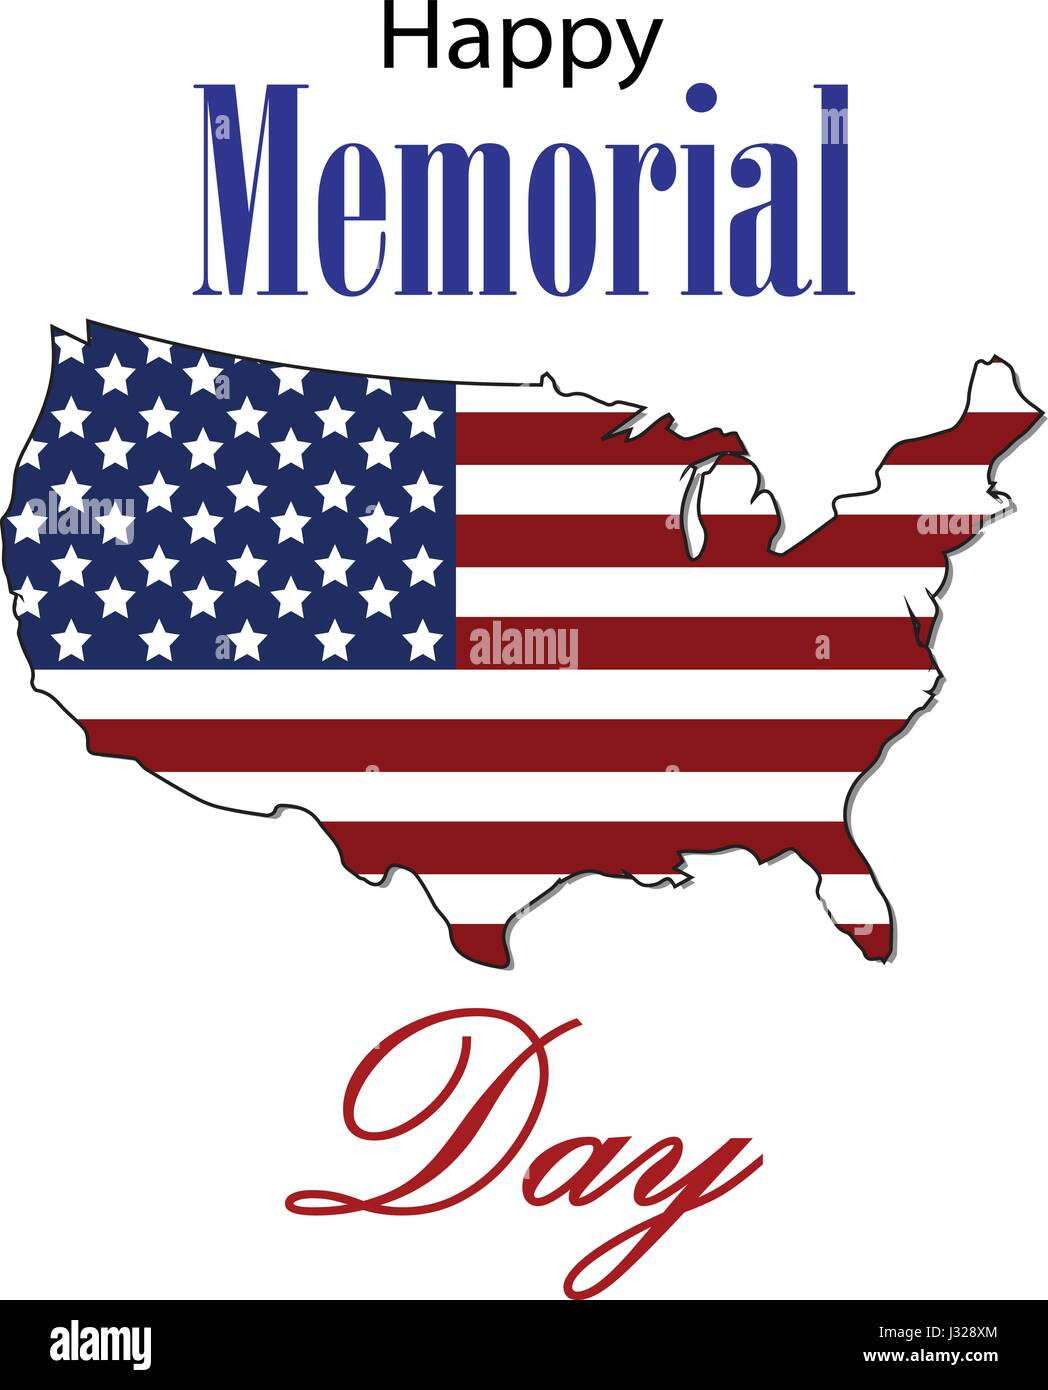 8e50fb32069f Vector Happy Memorial Day card. National american holiday illustration with USA  flag. Festive poster or banner with hand lettering.